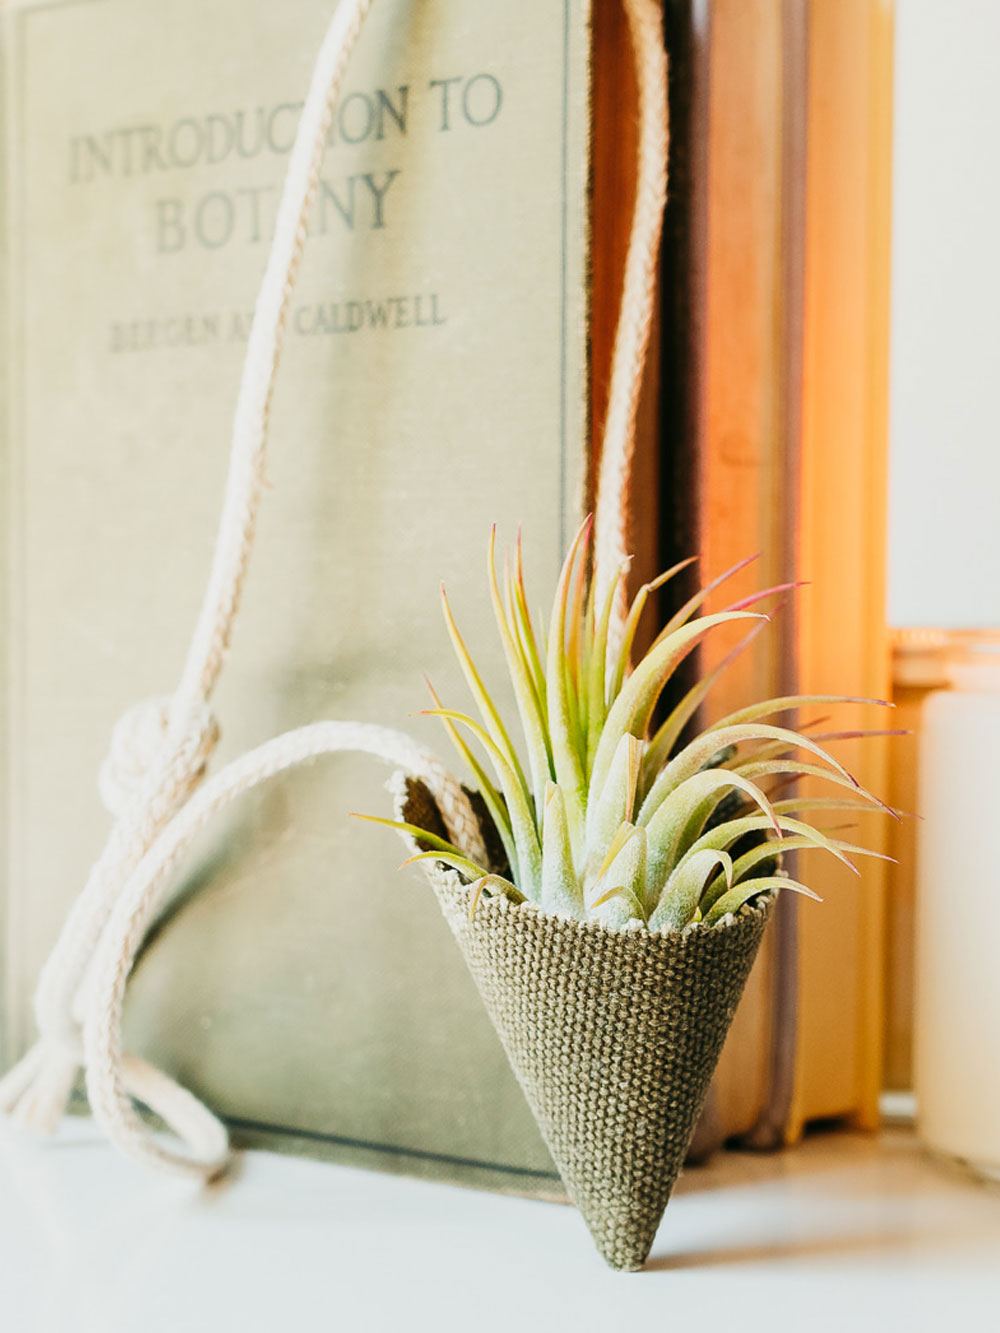 An air plant stands in a green fabric cone plant holder. A thick cord from the holder is draped over a book title Introduction to Botany.